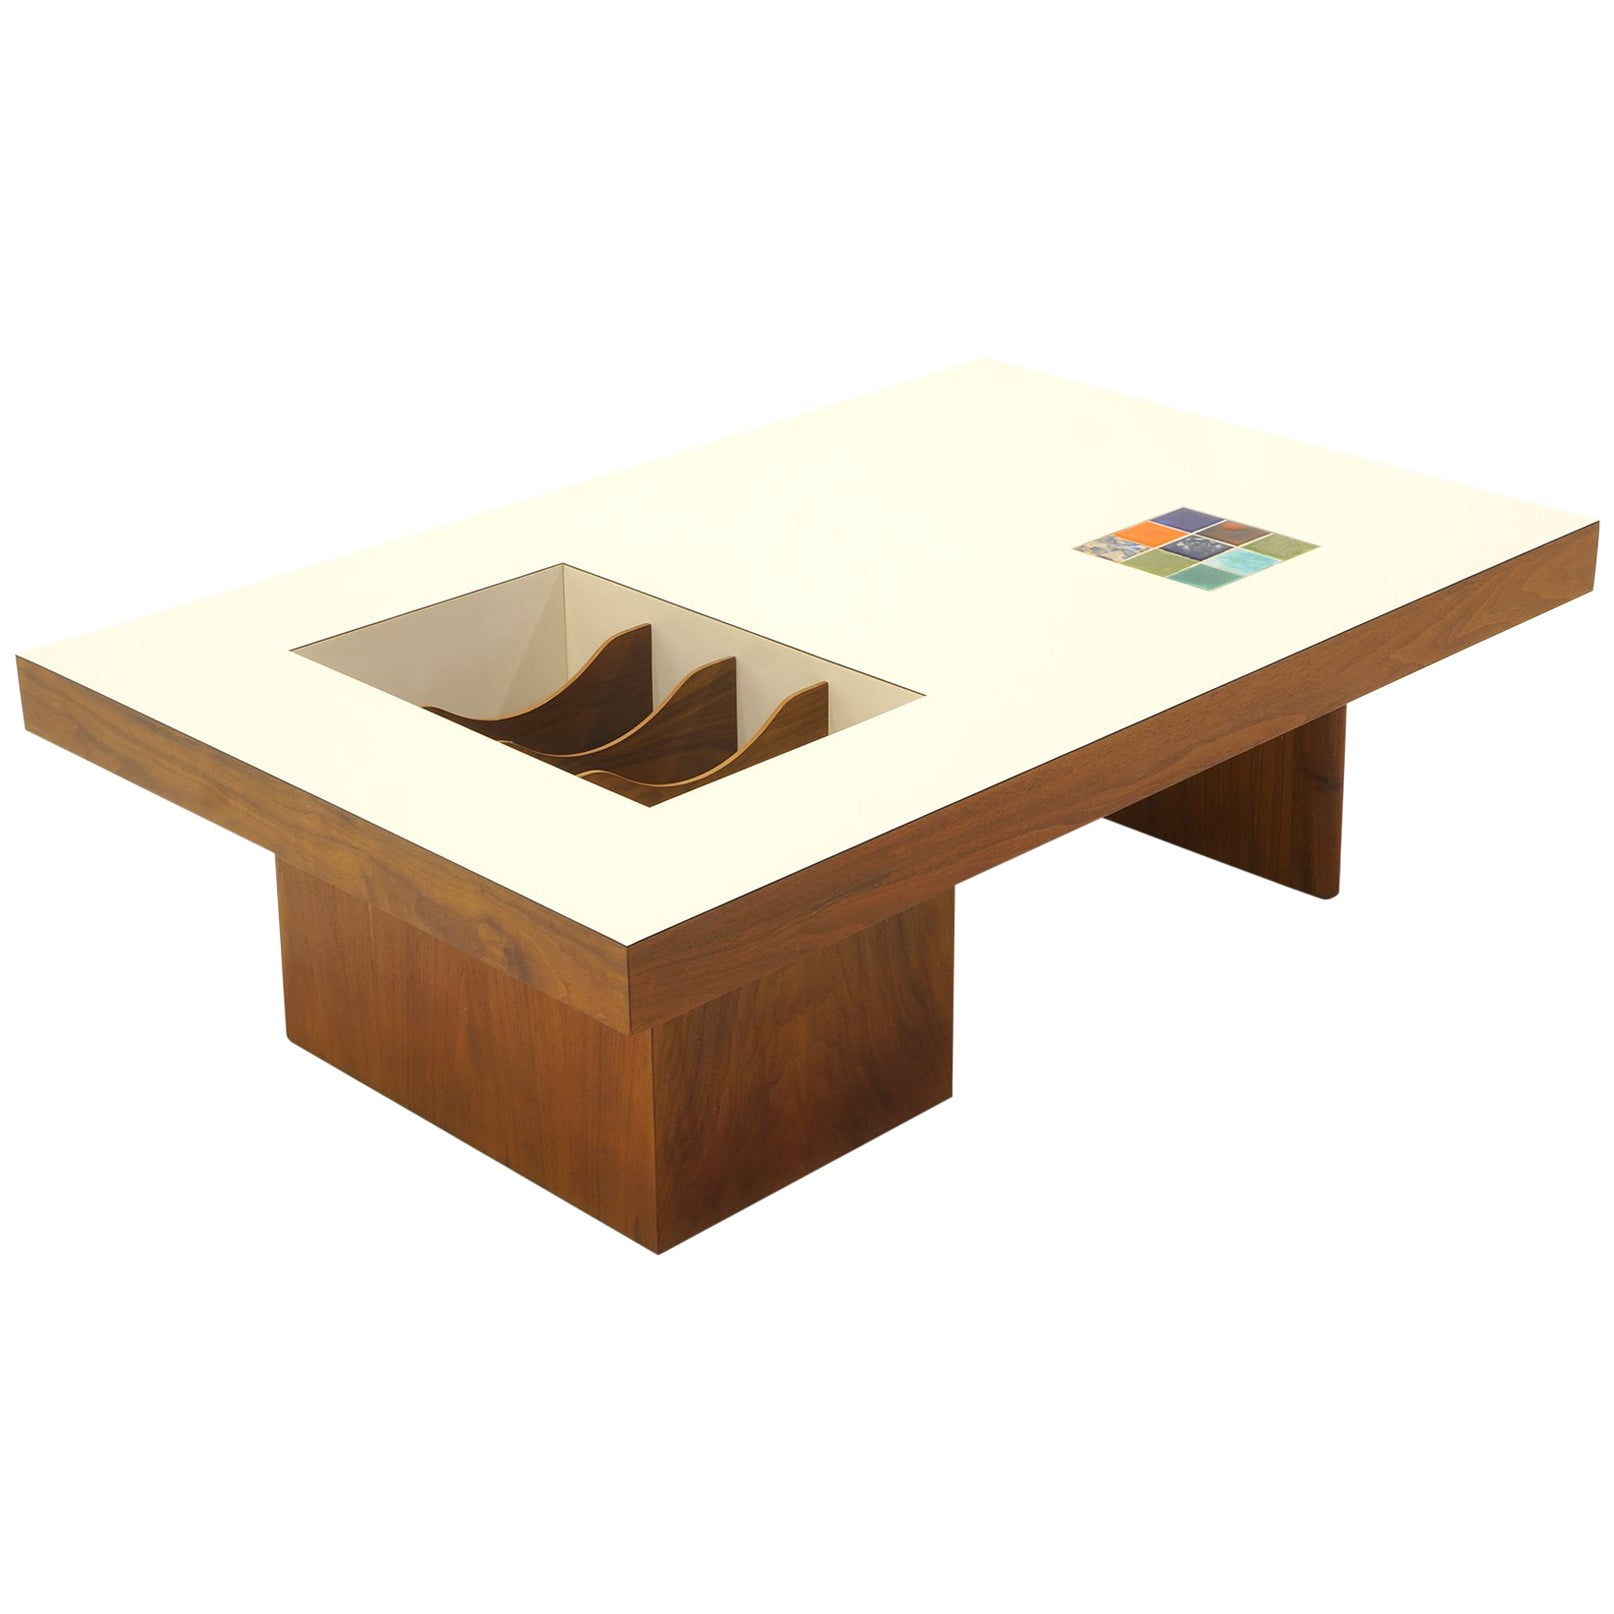 Modern Coffee Table With Storage Danish Modern Coffee Table With Built In Magazine Album Storage Tile Inlay